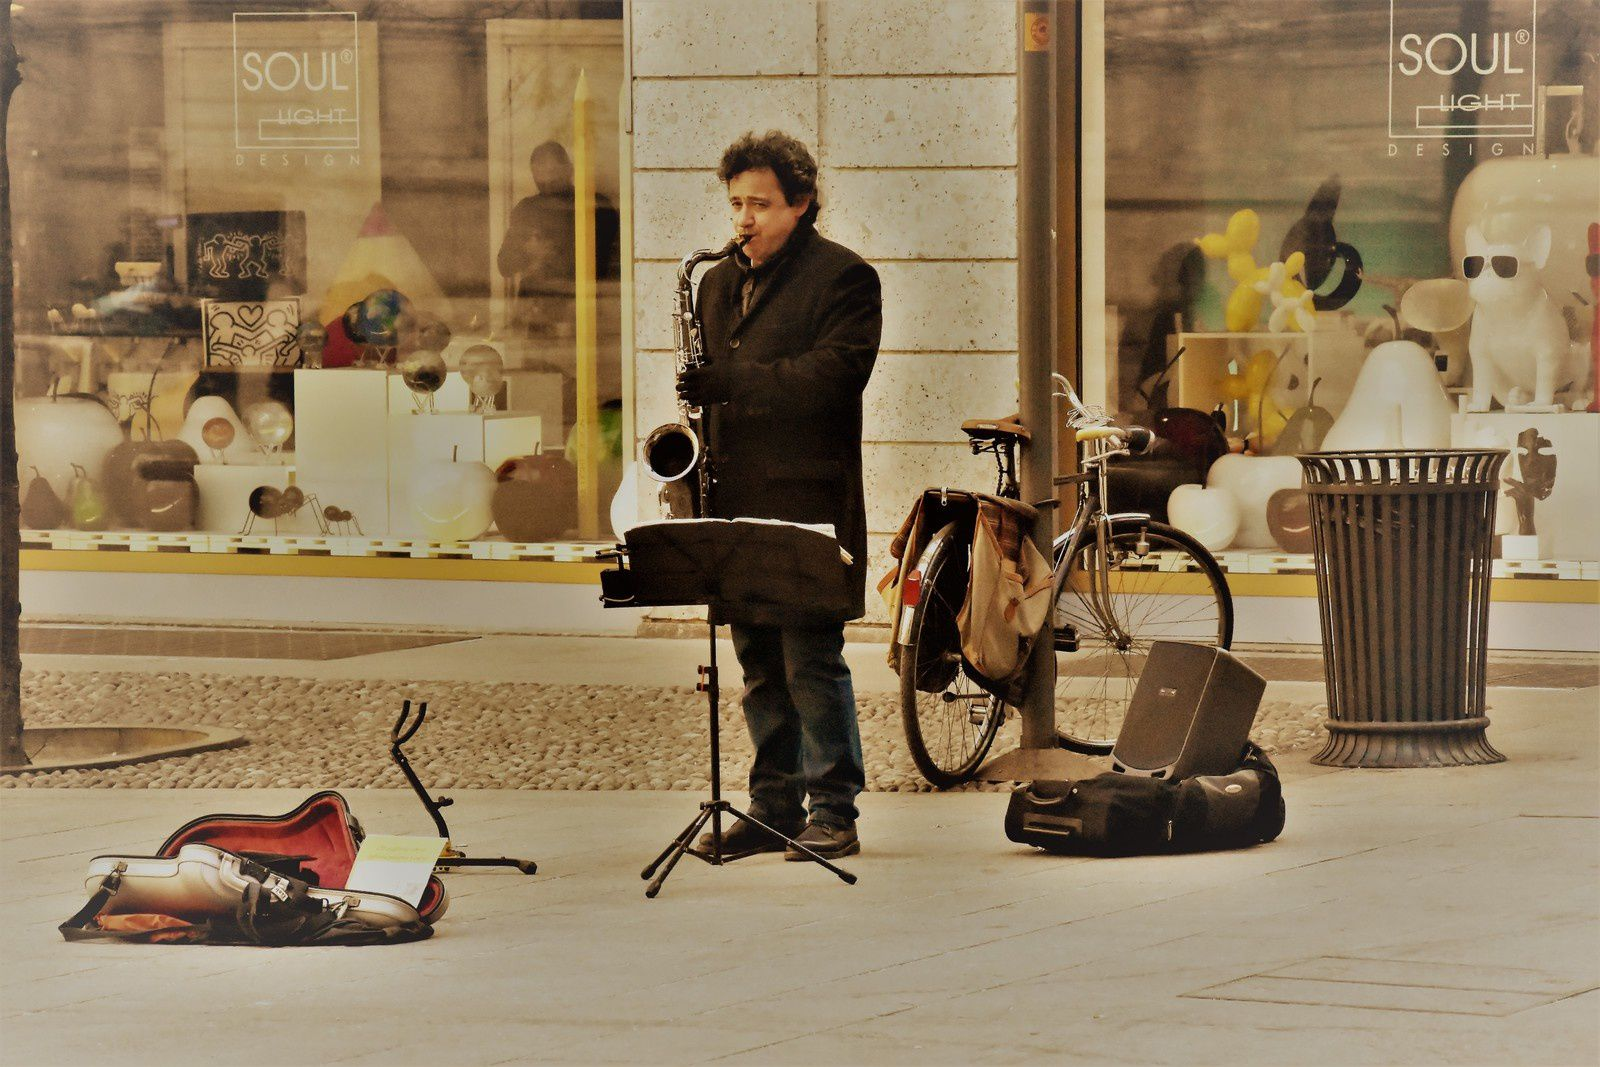 A SAXMAN ALONE IN THE STREET IN MILAN TOWN